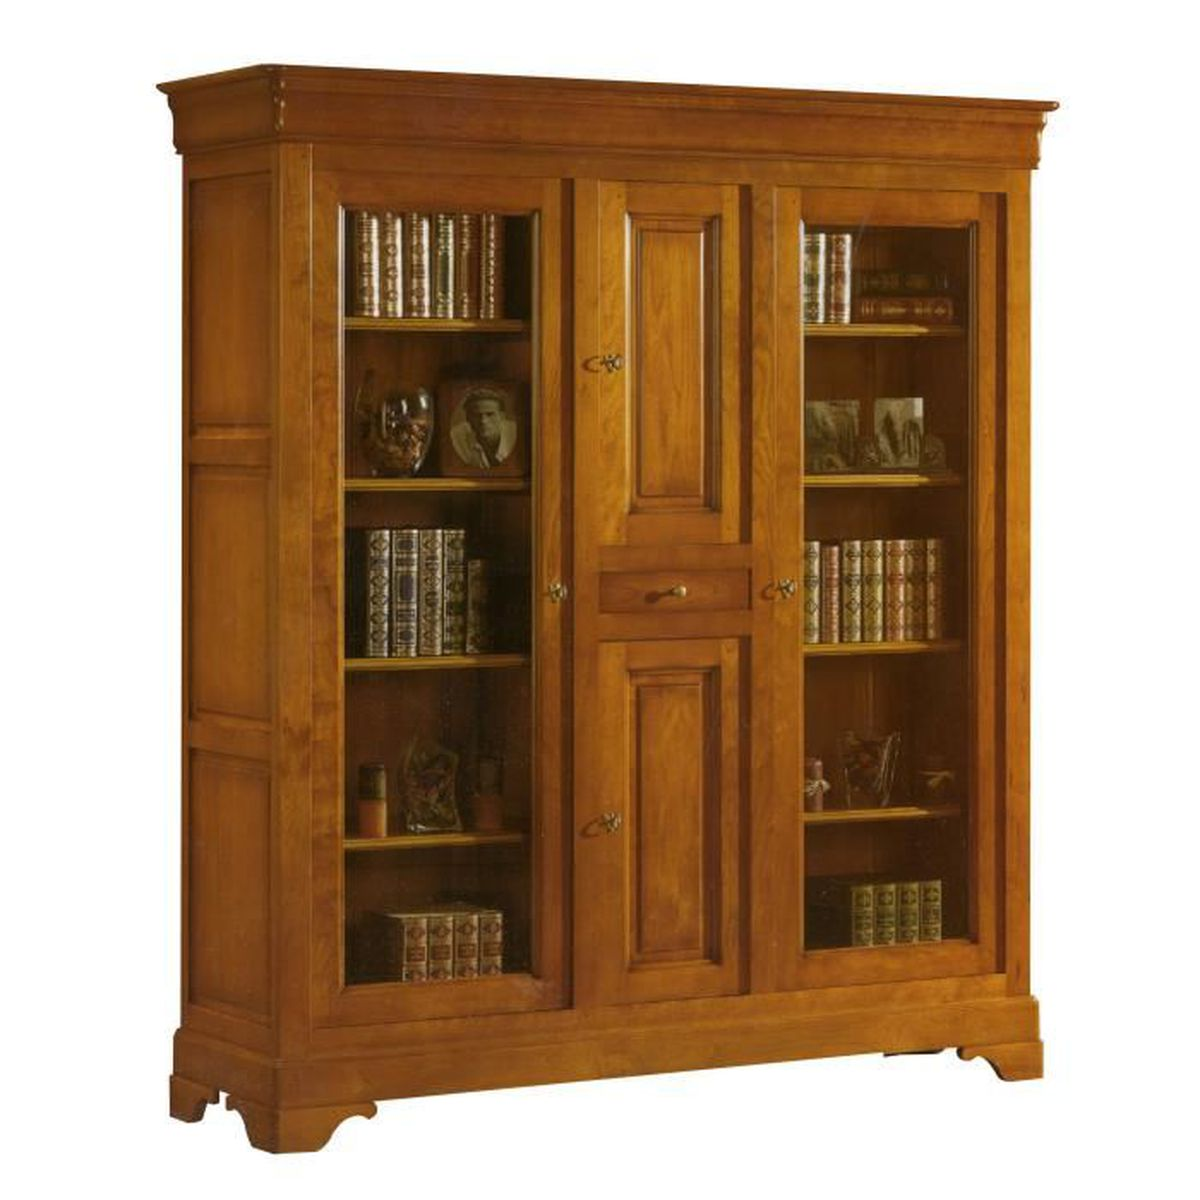 biblioth que de bureau 4 portes 1 tiroir en ch ne massif achat vente biblioth que. Black Bedroom Furniture Sets. Home Design Ideas